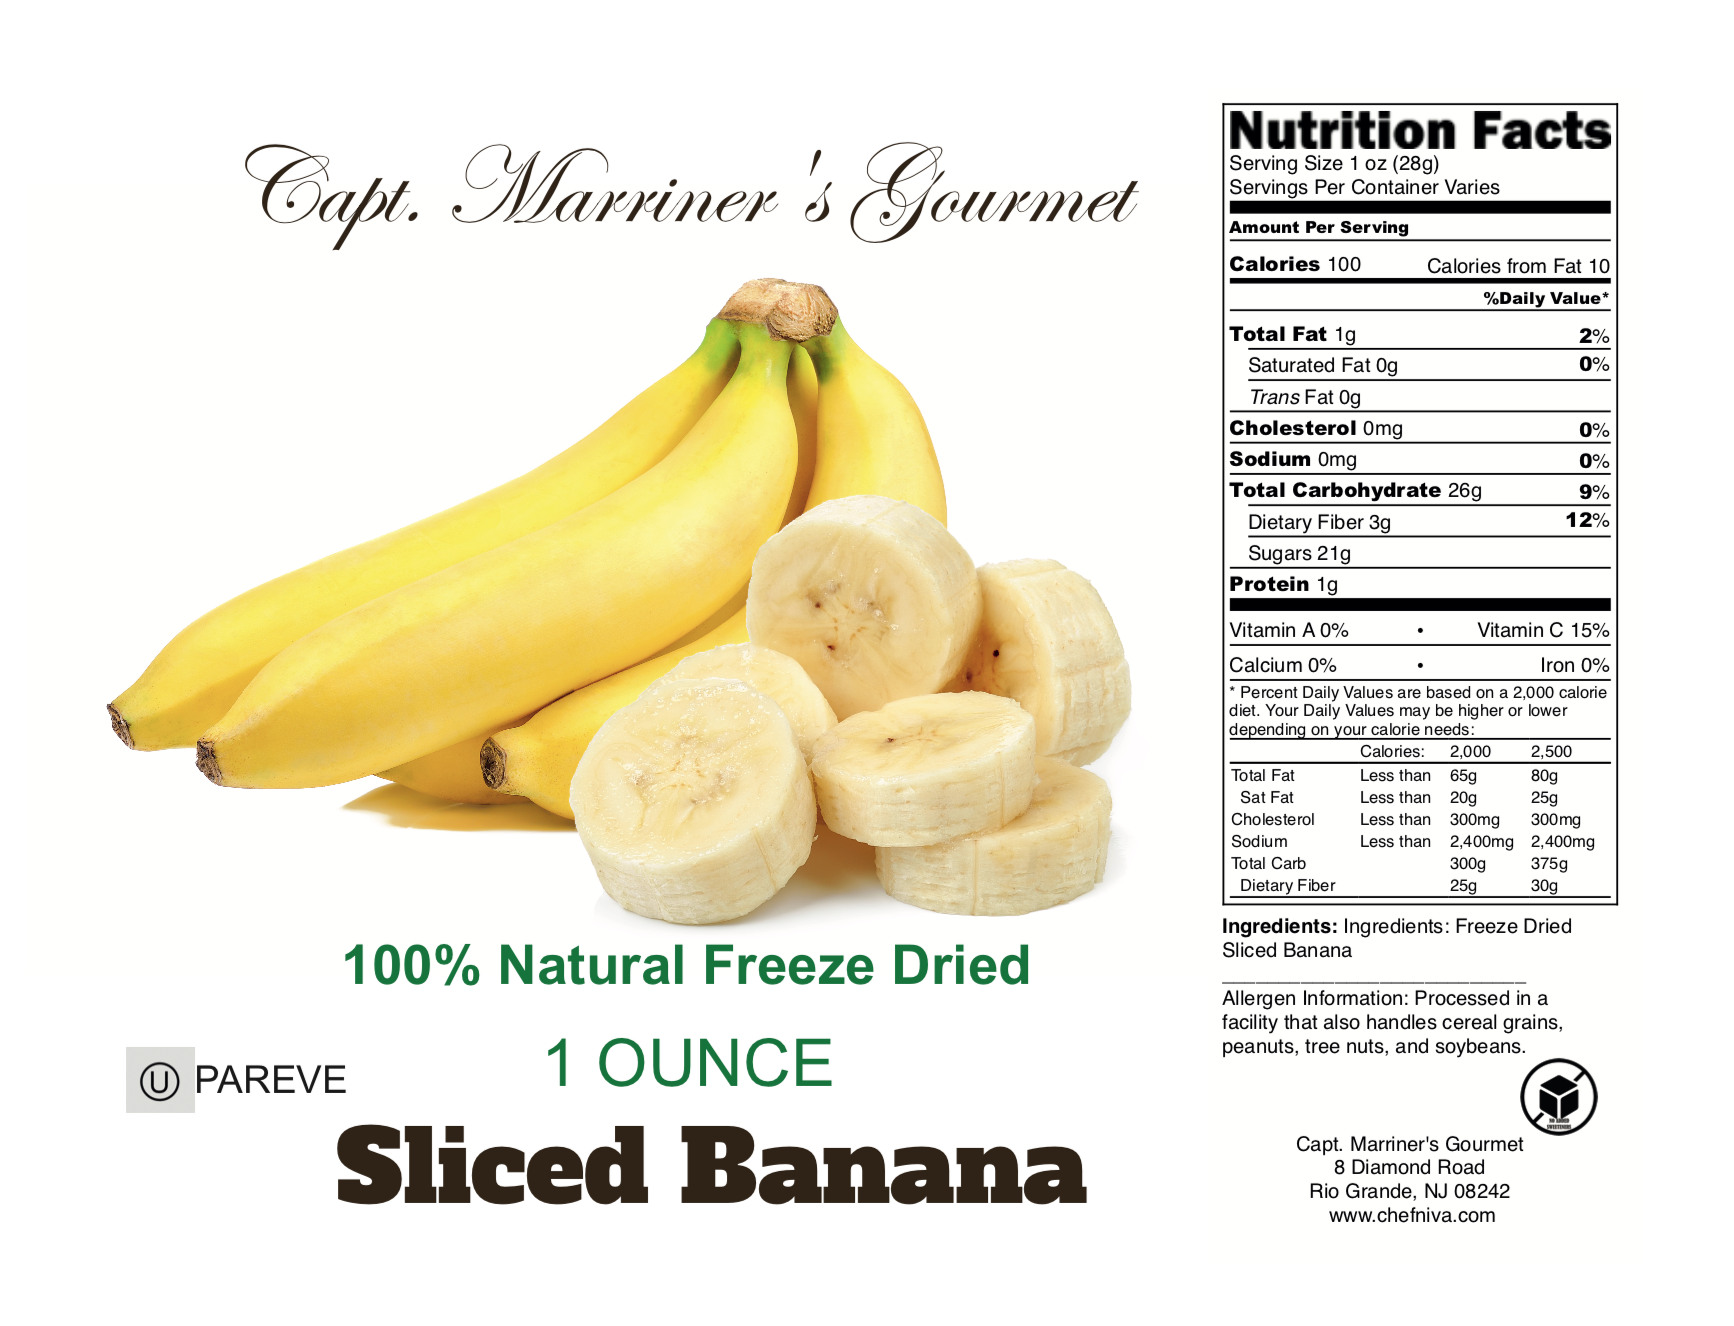 FREEZE DRIED SLICED BANANAS